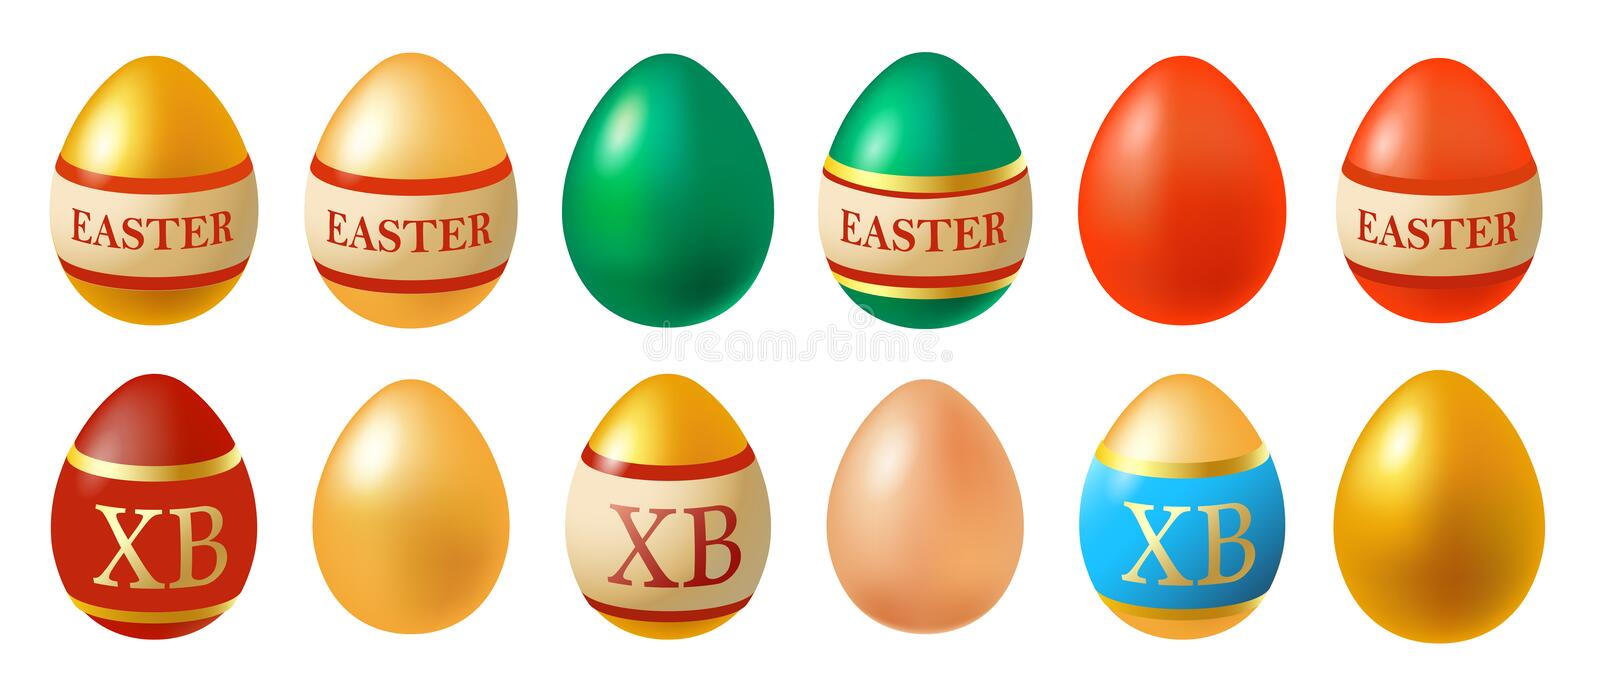 Vector illustration of Easter eggs collection on a white background. EPS 10. Vector illustration of Easter eggs collection on a white background vector illustration